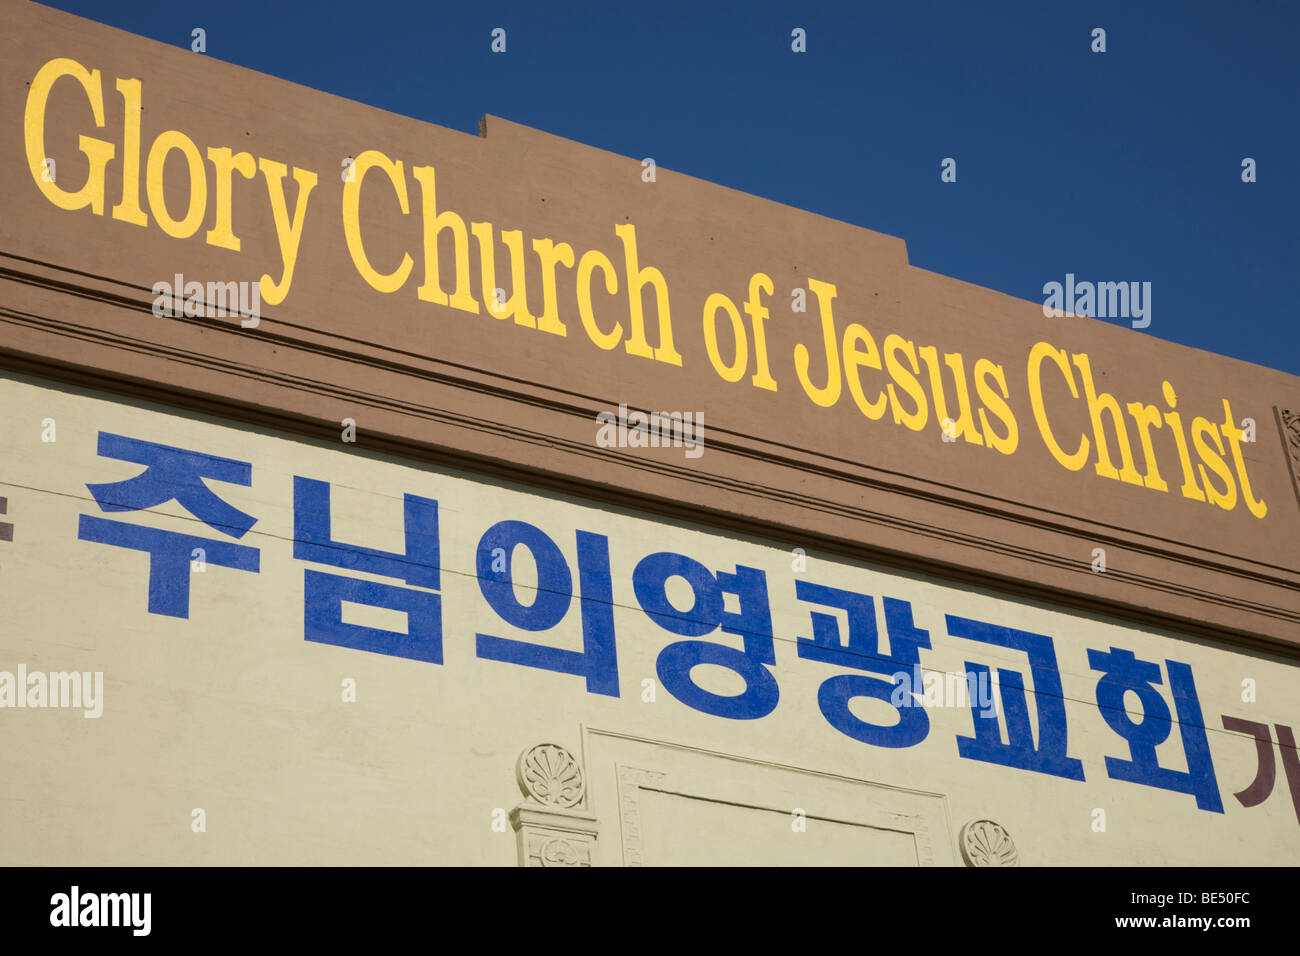 Sign The Glory Church Of Jesus Christ Painted In English And